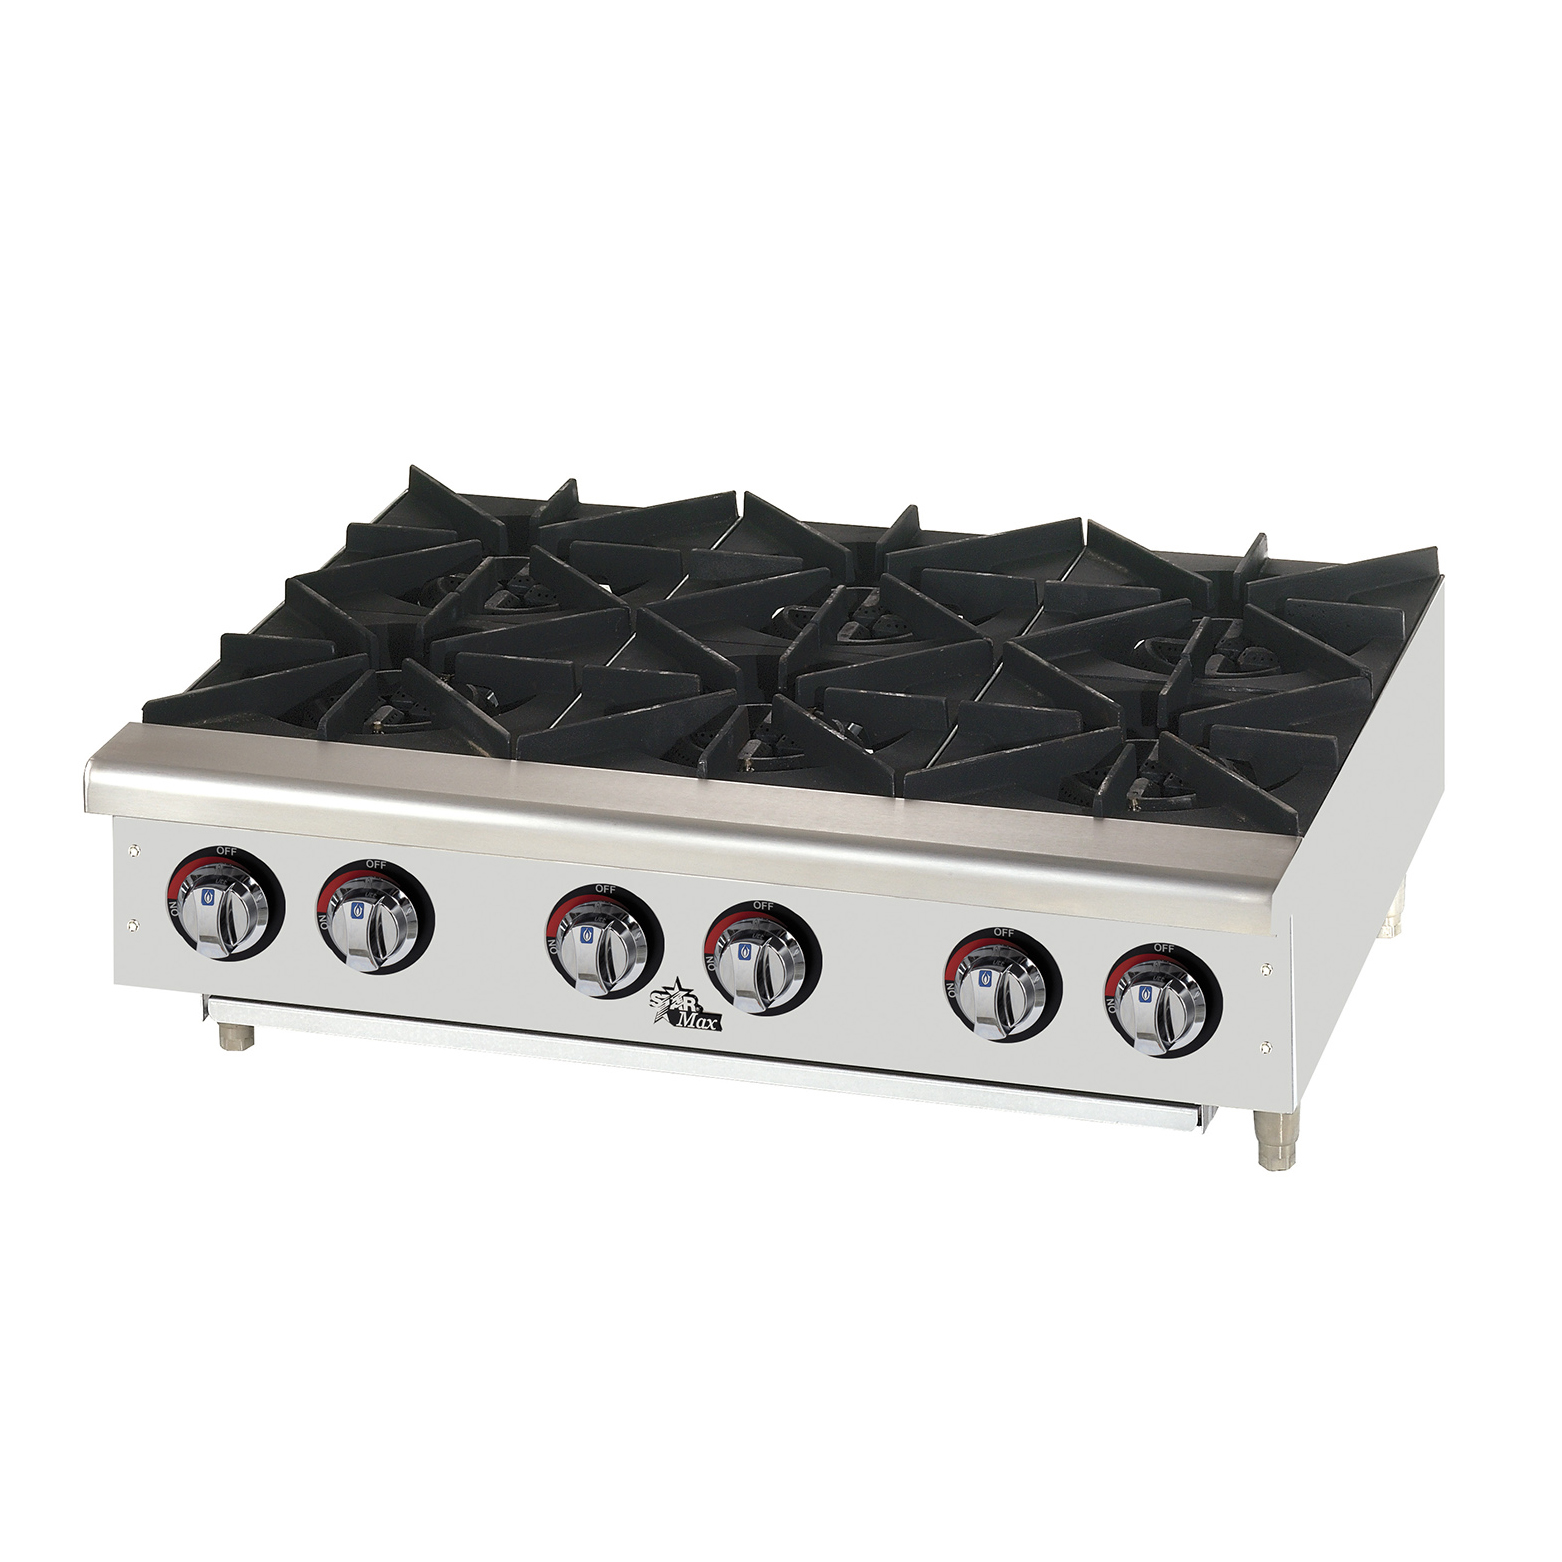 Star 606HF hotplate, countertop, gas